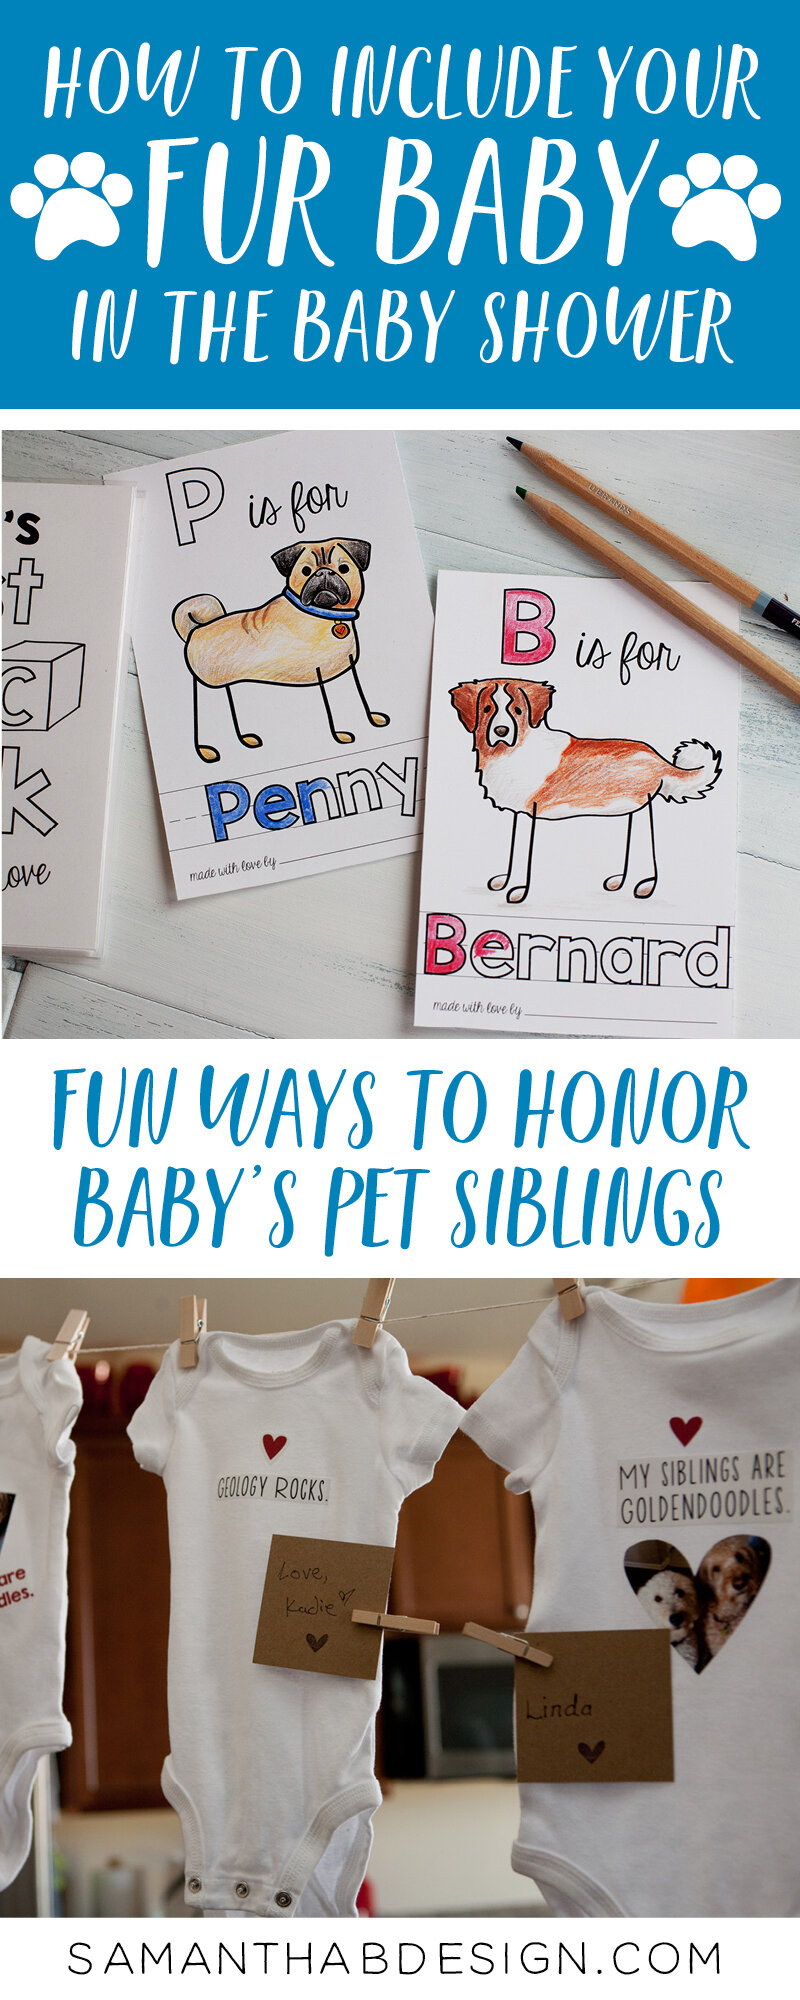 How-to-Include-Your-Fur-Baby-Shower-Activity-4.jpg